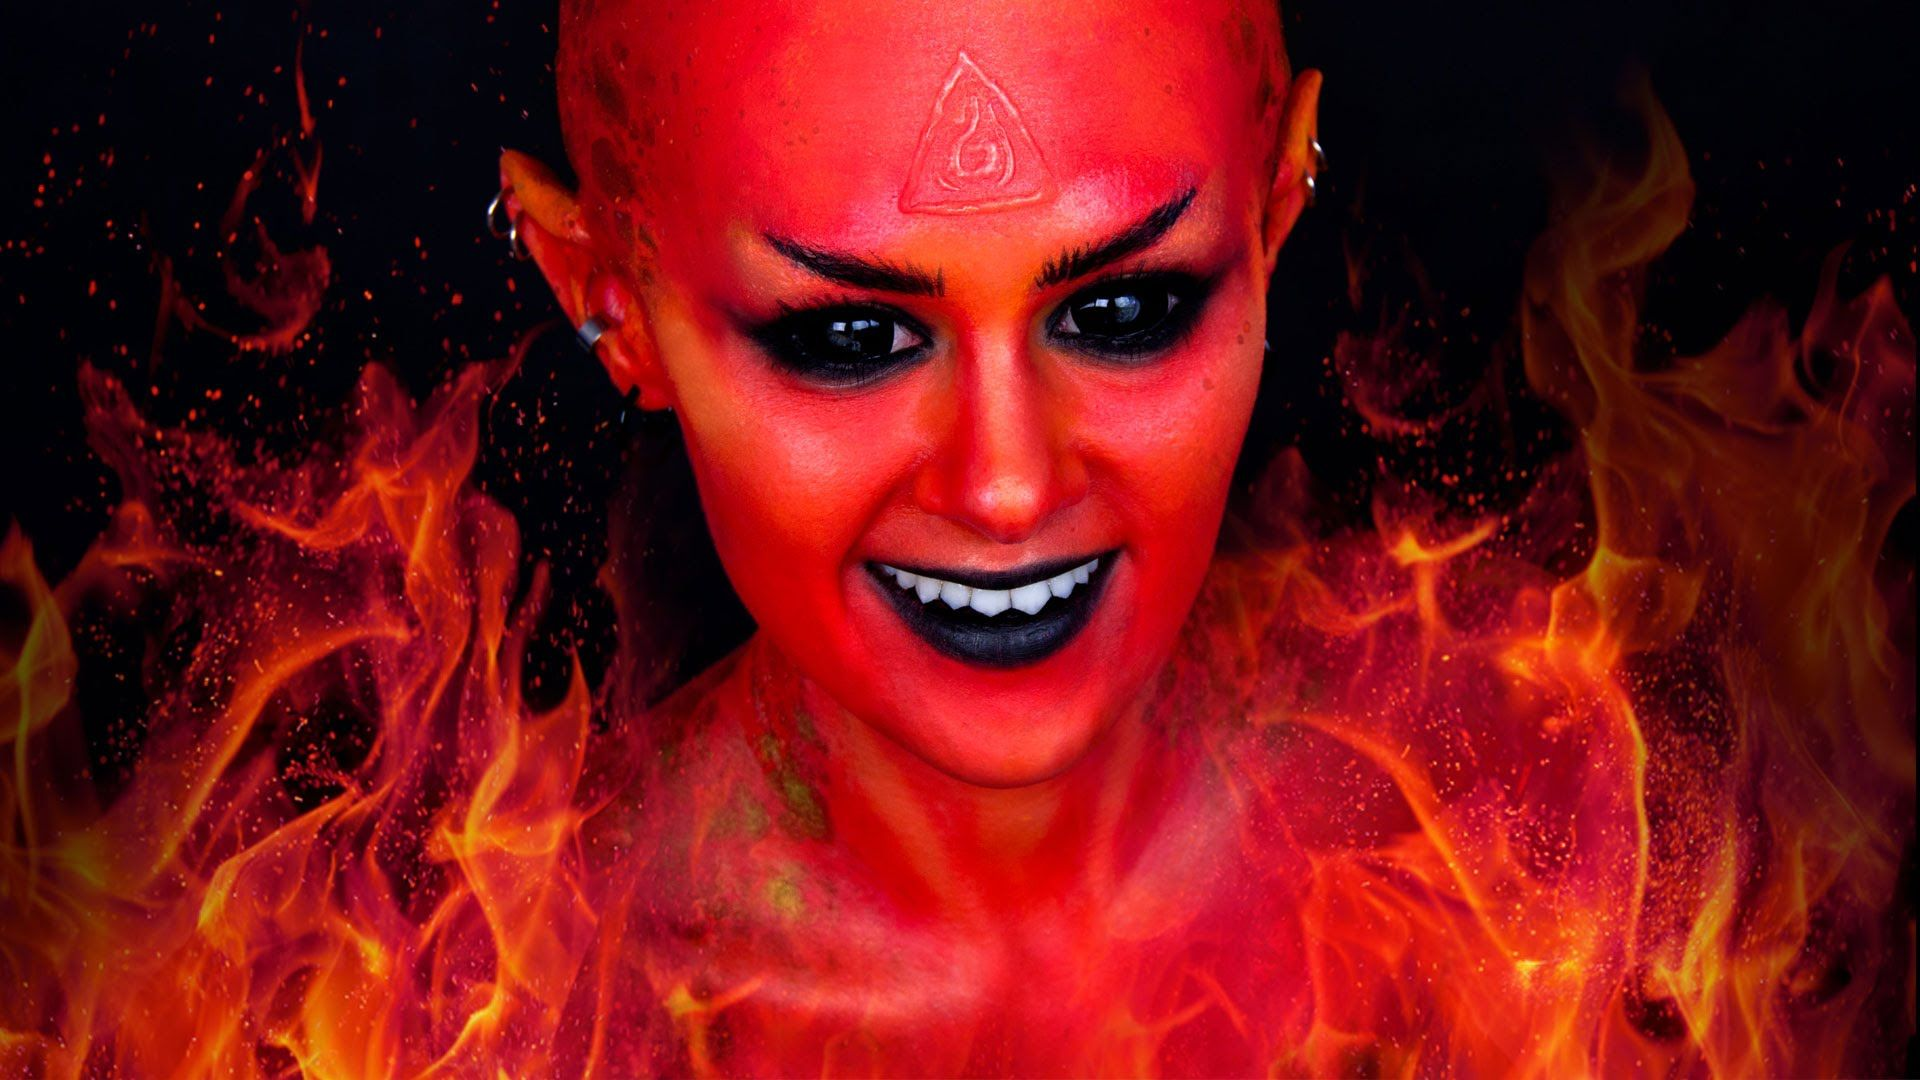 Fire fairy devildemon makeup tutorial life in color fire fairy devildemon makeup tutorial baditri Image collections